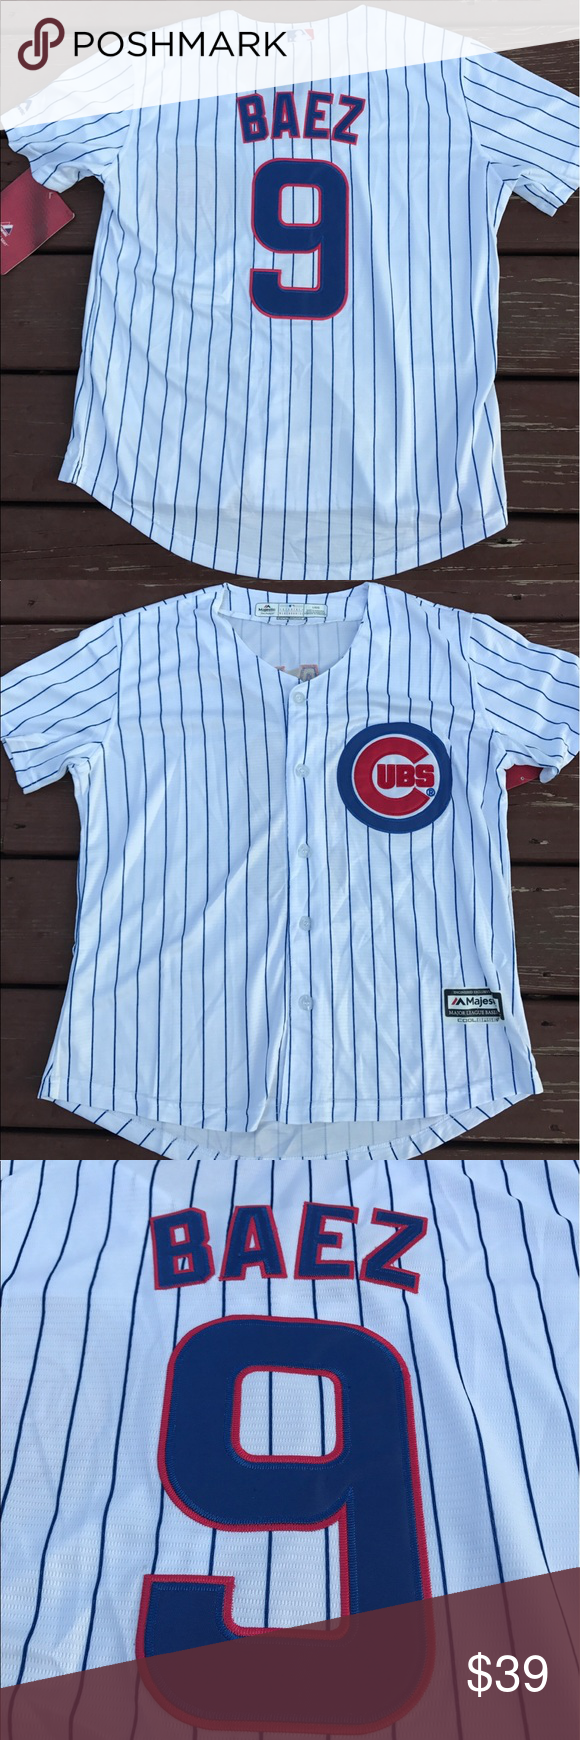 info for d8456 1d950 Women's Chicago Cubs Javier Baez jersey (Large) Women's ...